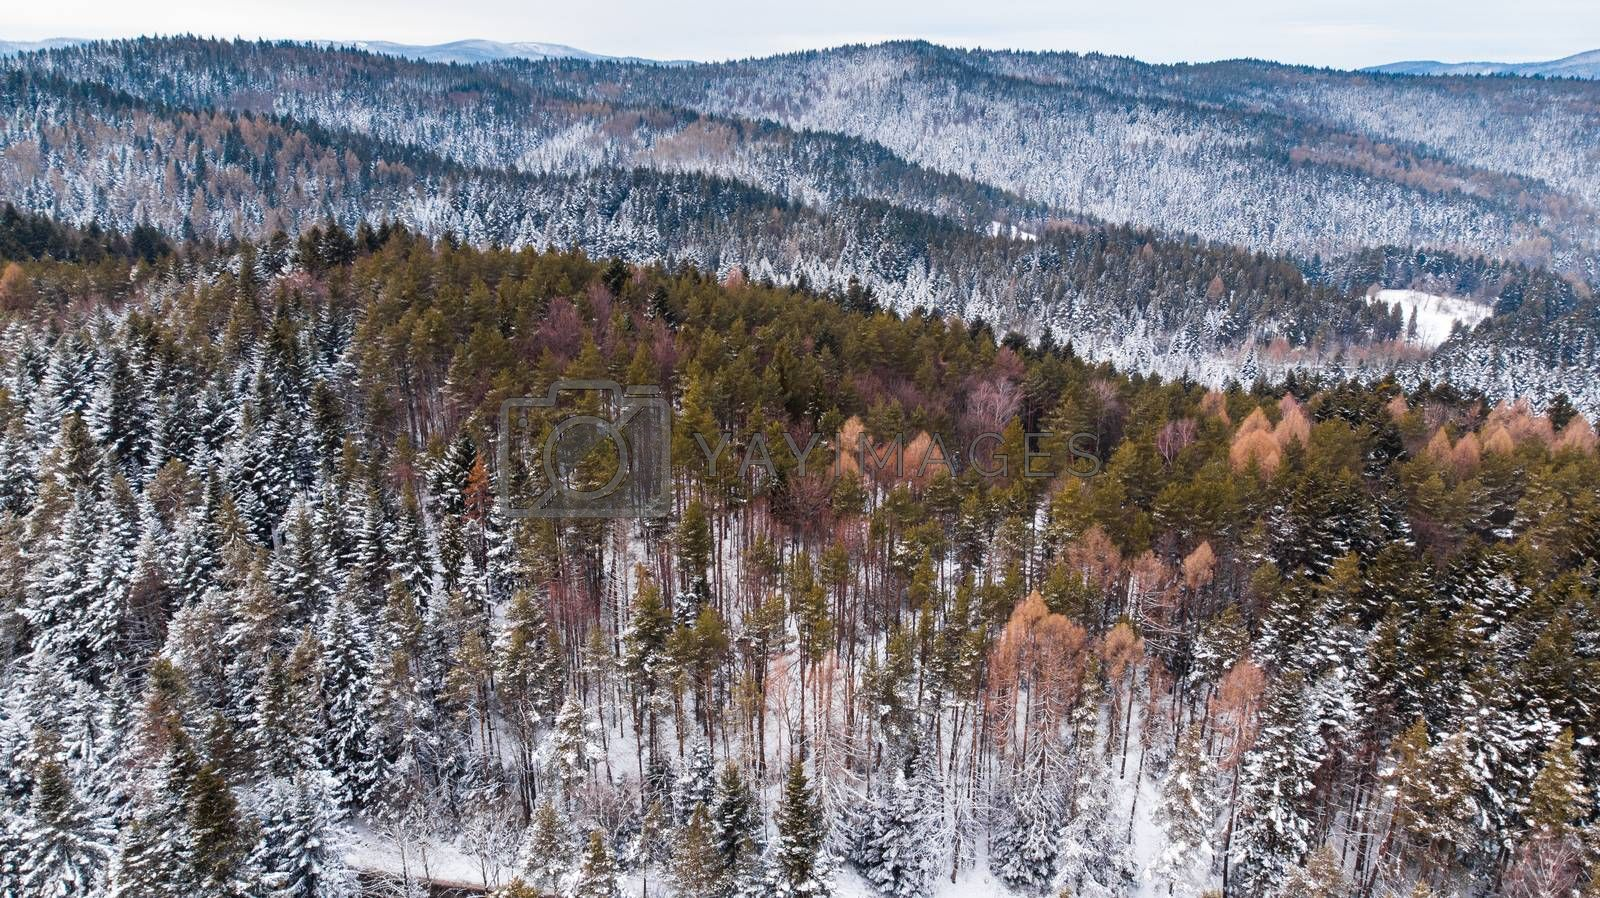 Woodlands on Hills Covered in Fresh Snow. Aerial Drone View by merc67